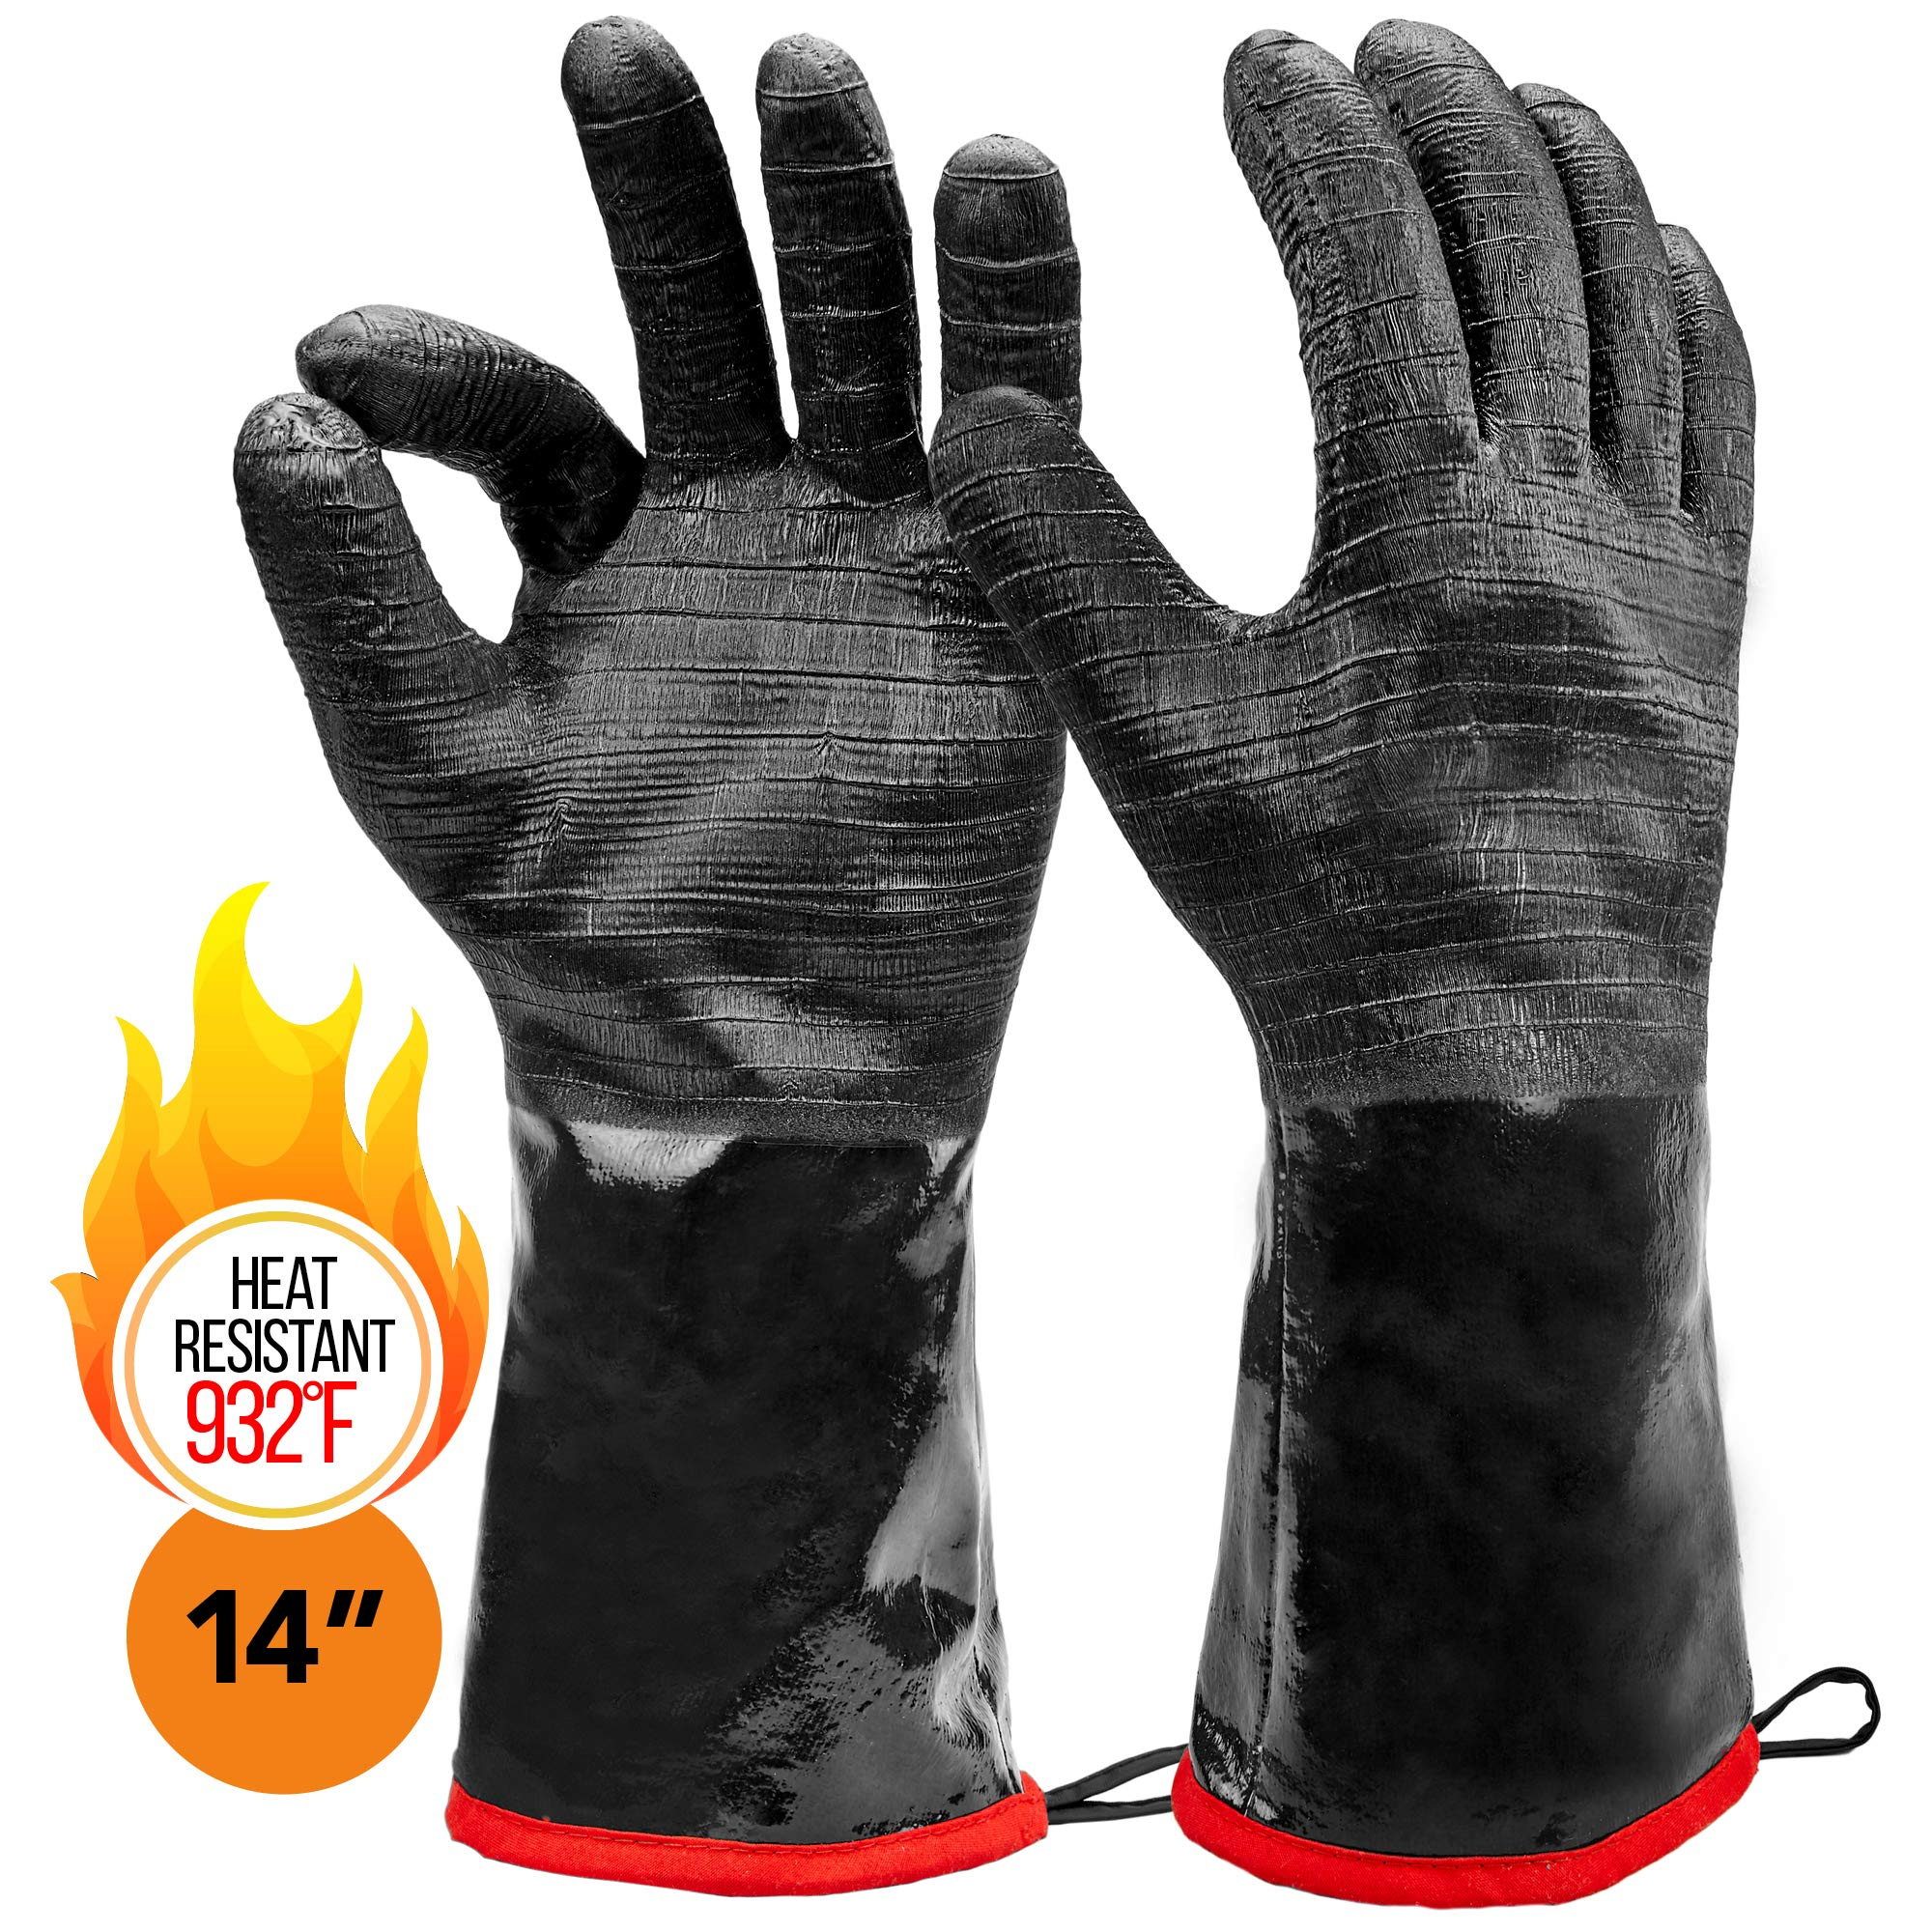 Heatsistance Heat Resistant BBQ Gloves, 14'' Long Sleeve, Extra Large Textured Grip to Handle Wet, Greasy or Oily Foods Fire and Food Safe Turkey Fryer Oven Mitts for Smoker, Grills and Barbecue by Heatsistance